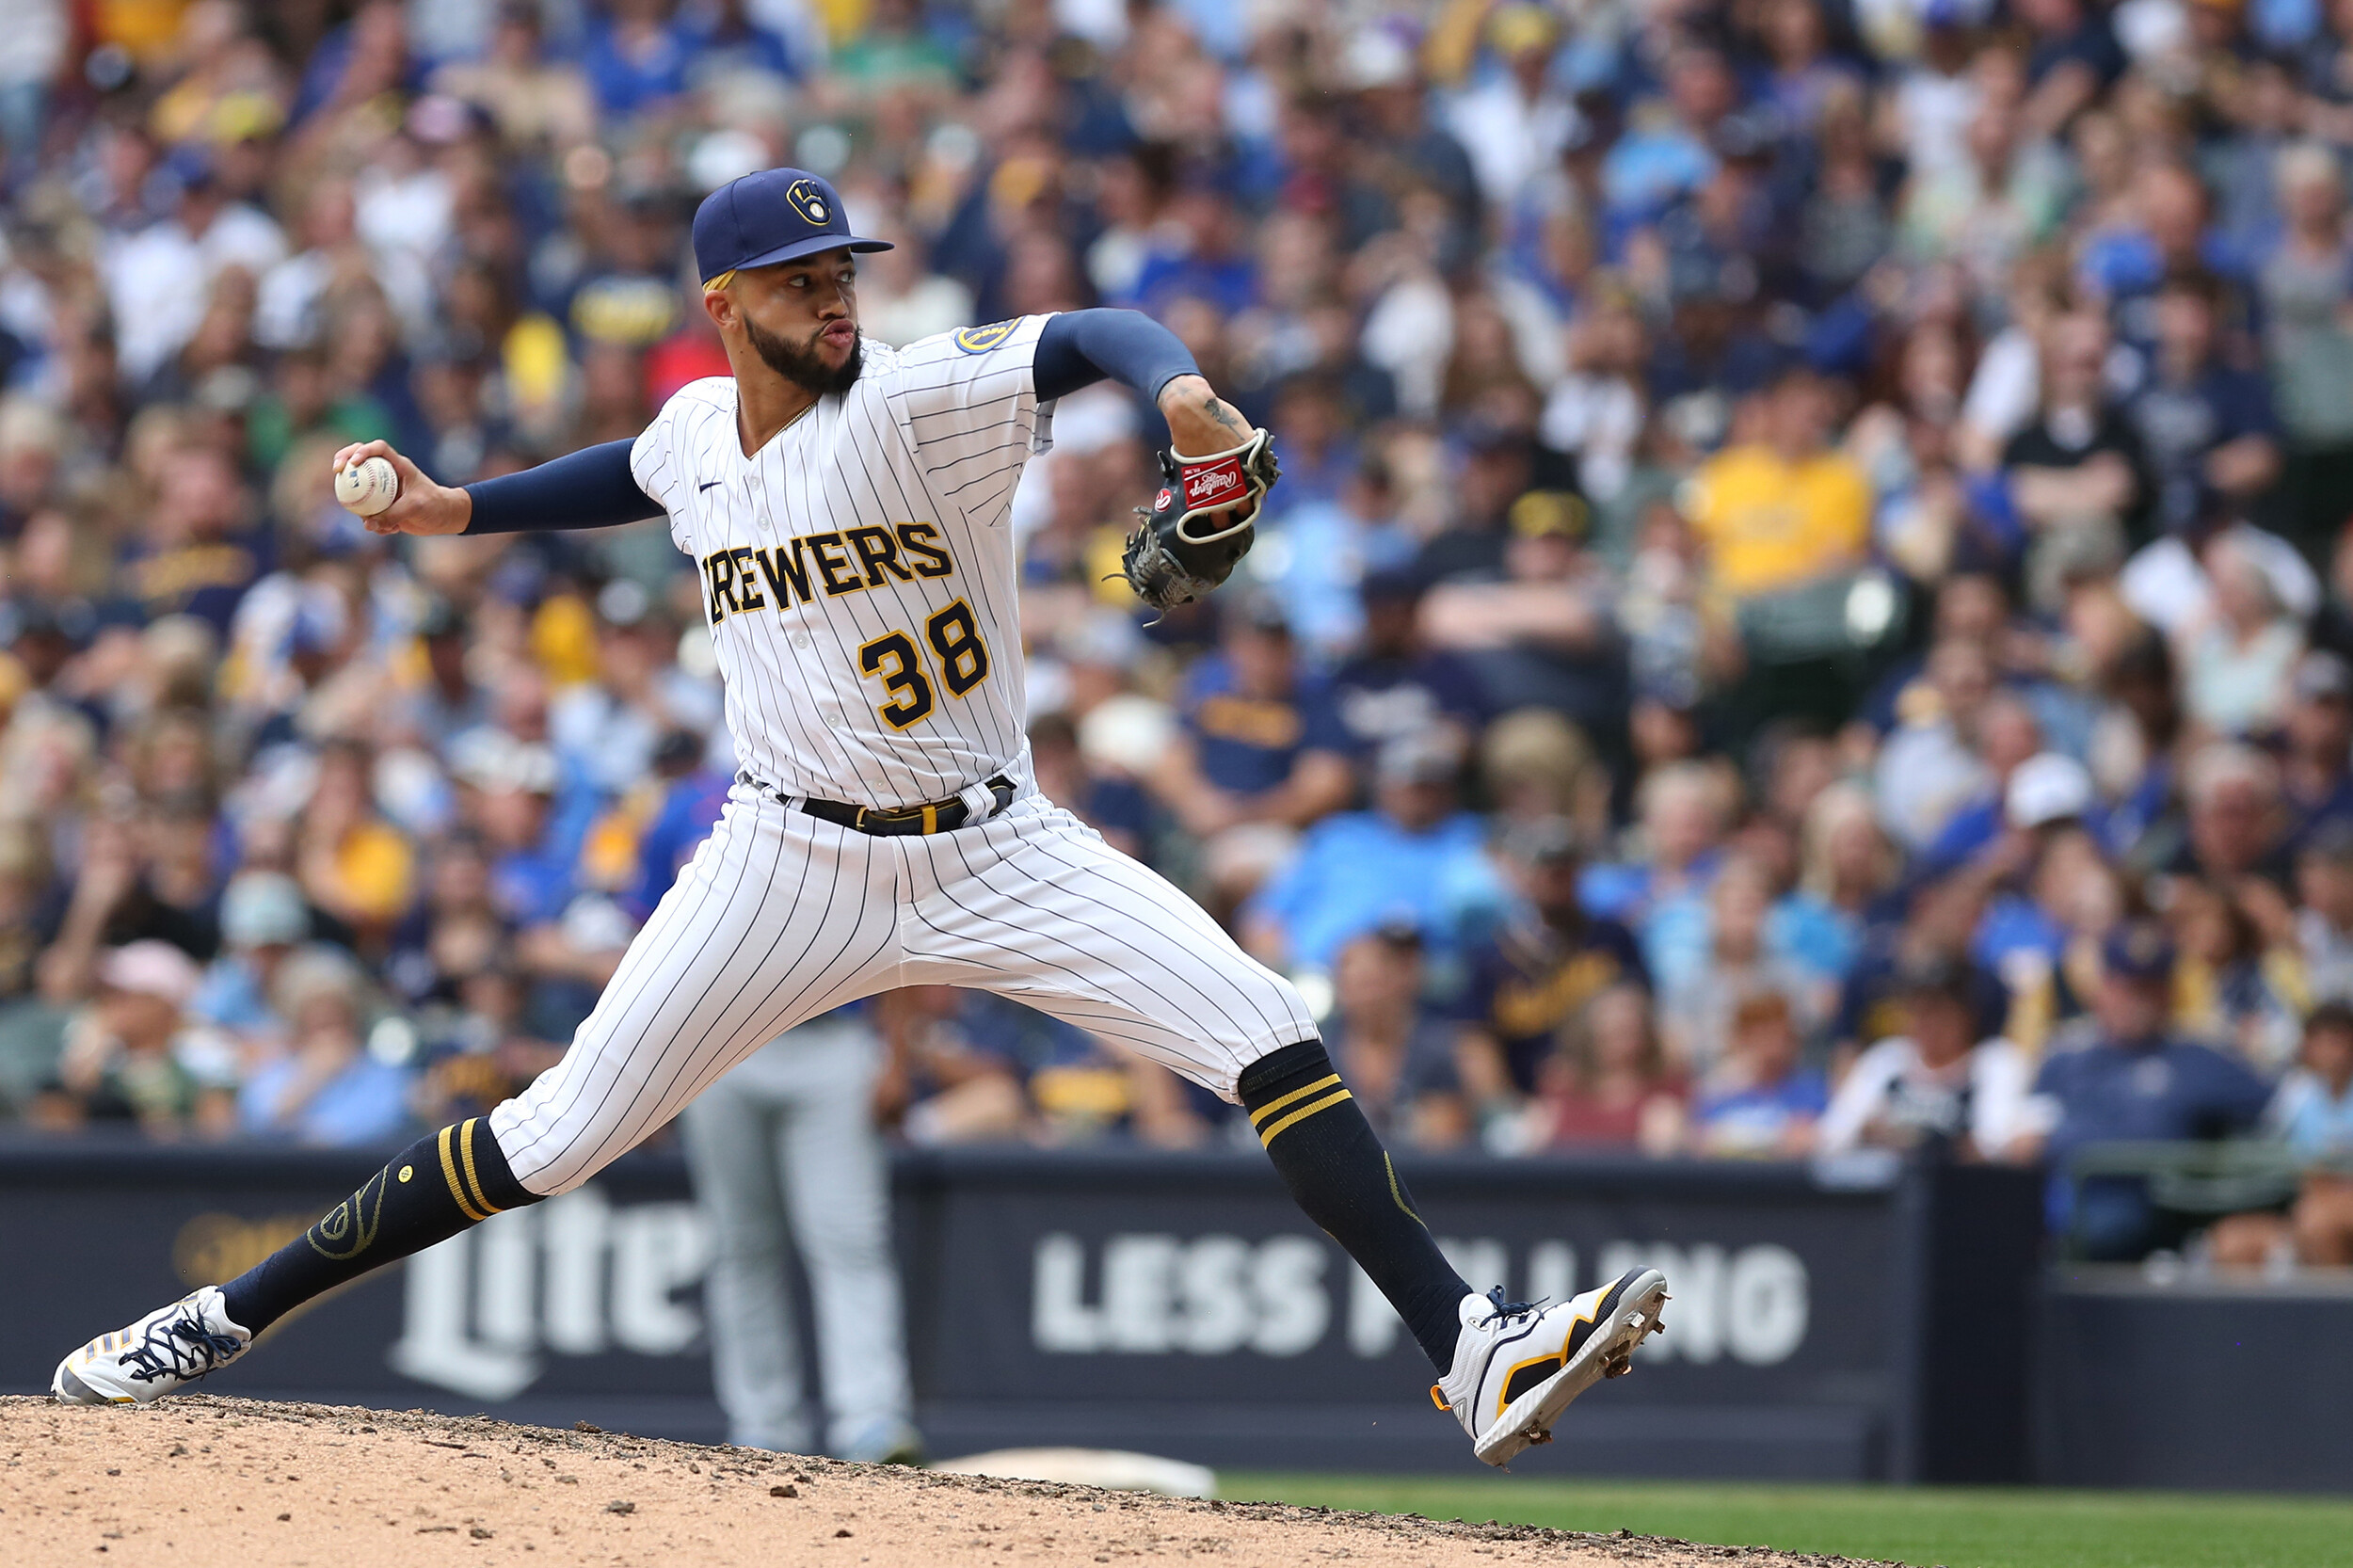 Brewers pitcher likely out for postseason after punching wall with throwing hand